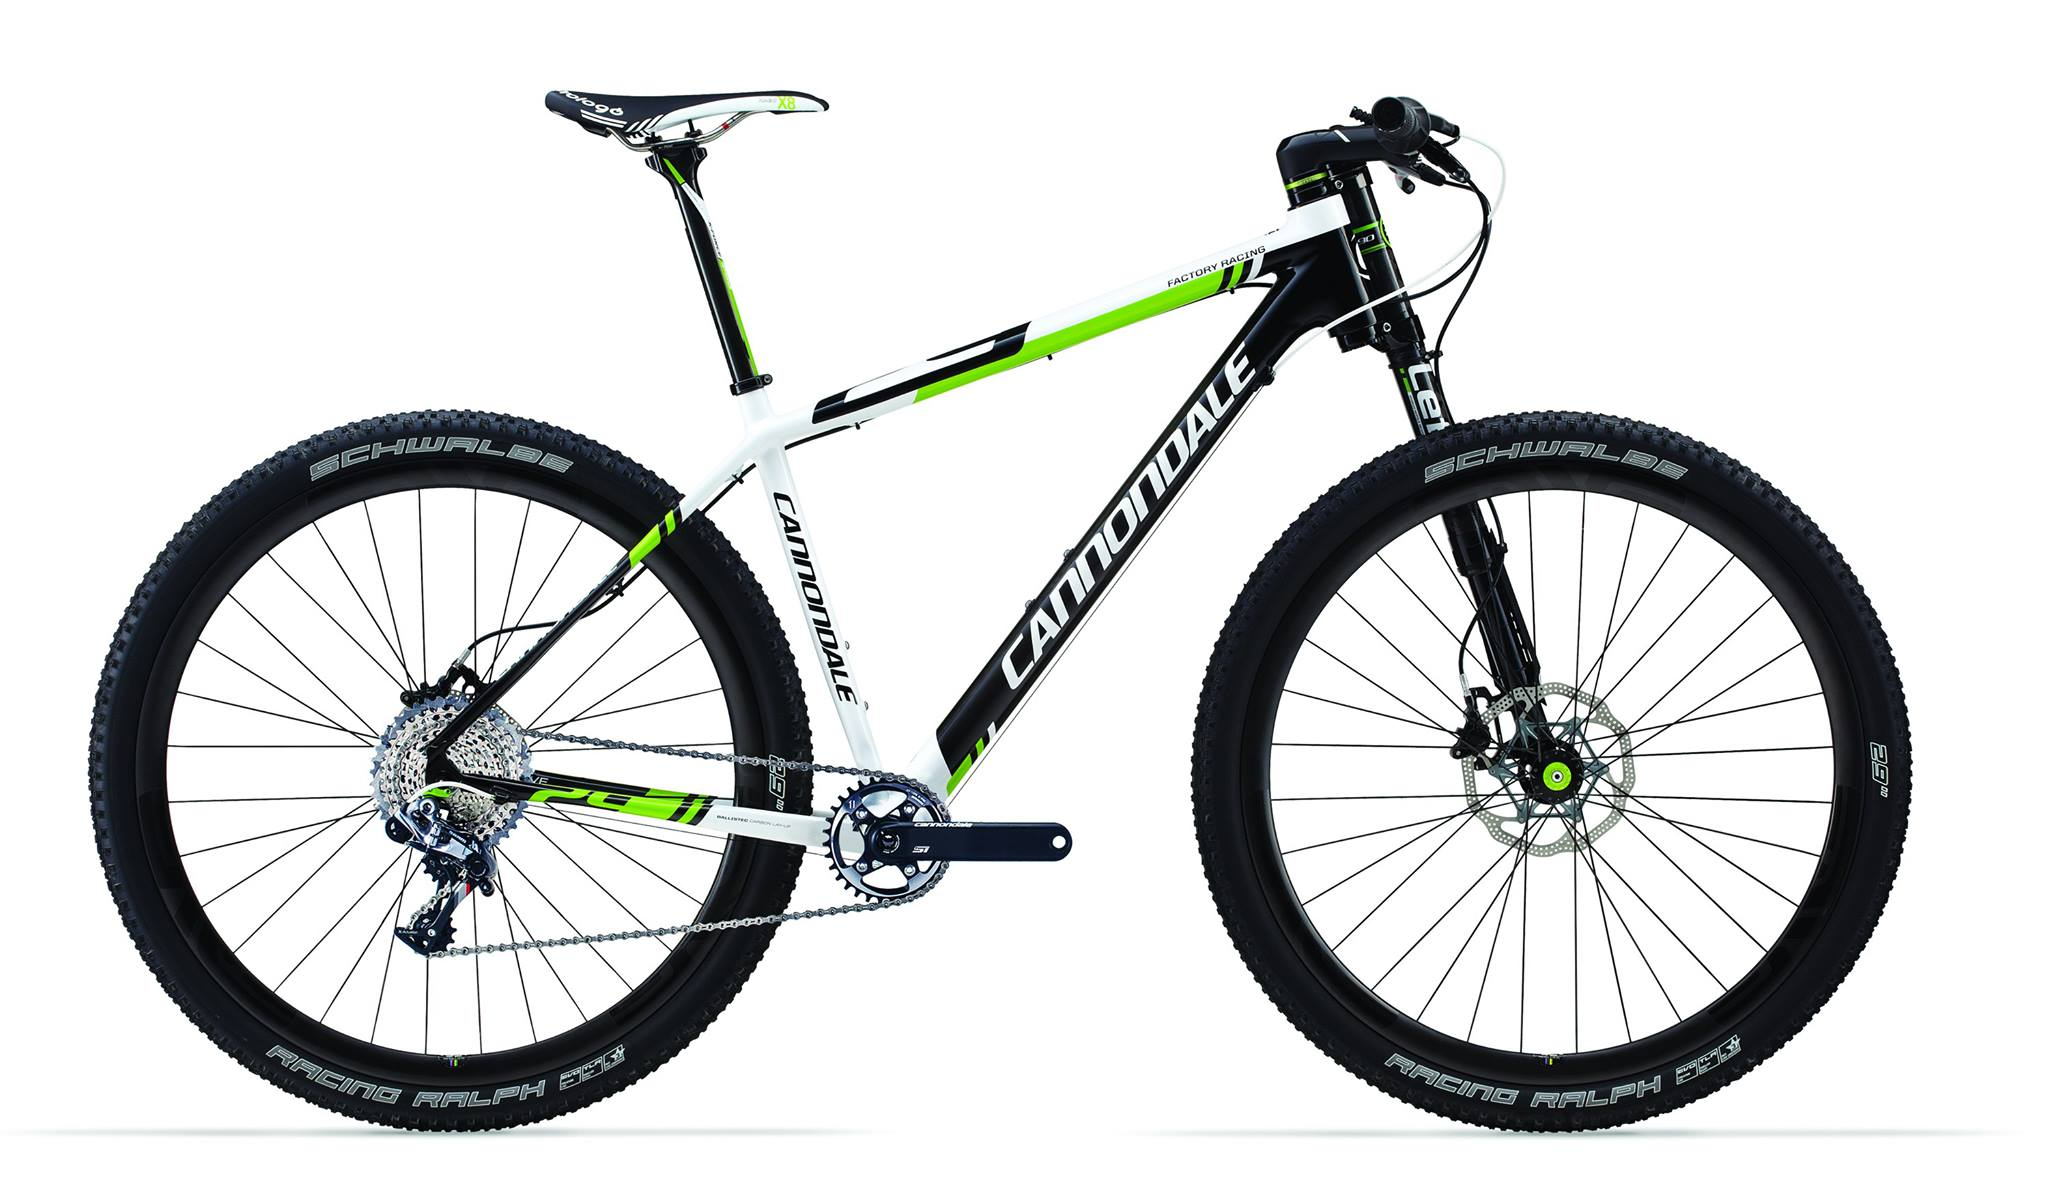 Cannondale Flash et Scalpel 2014